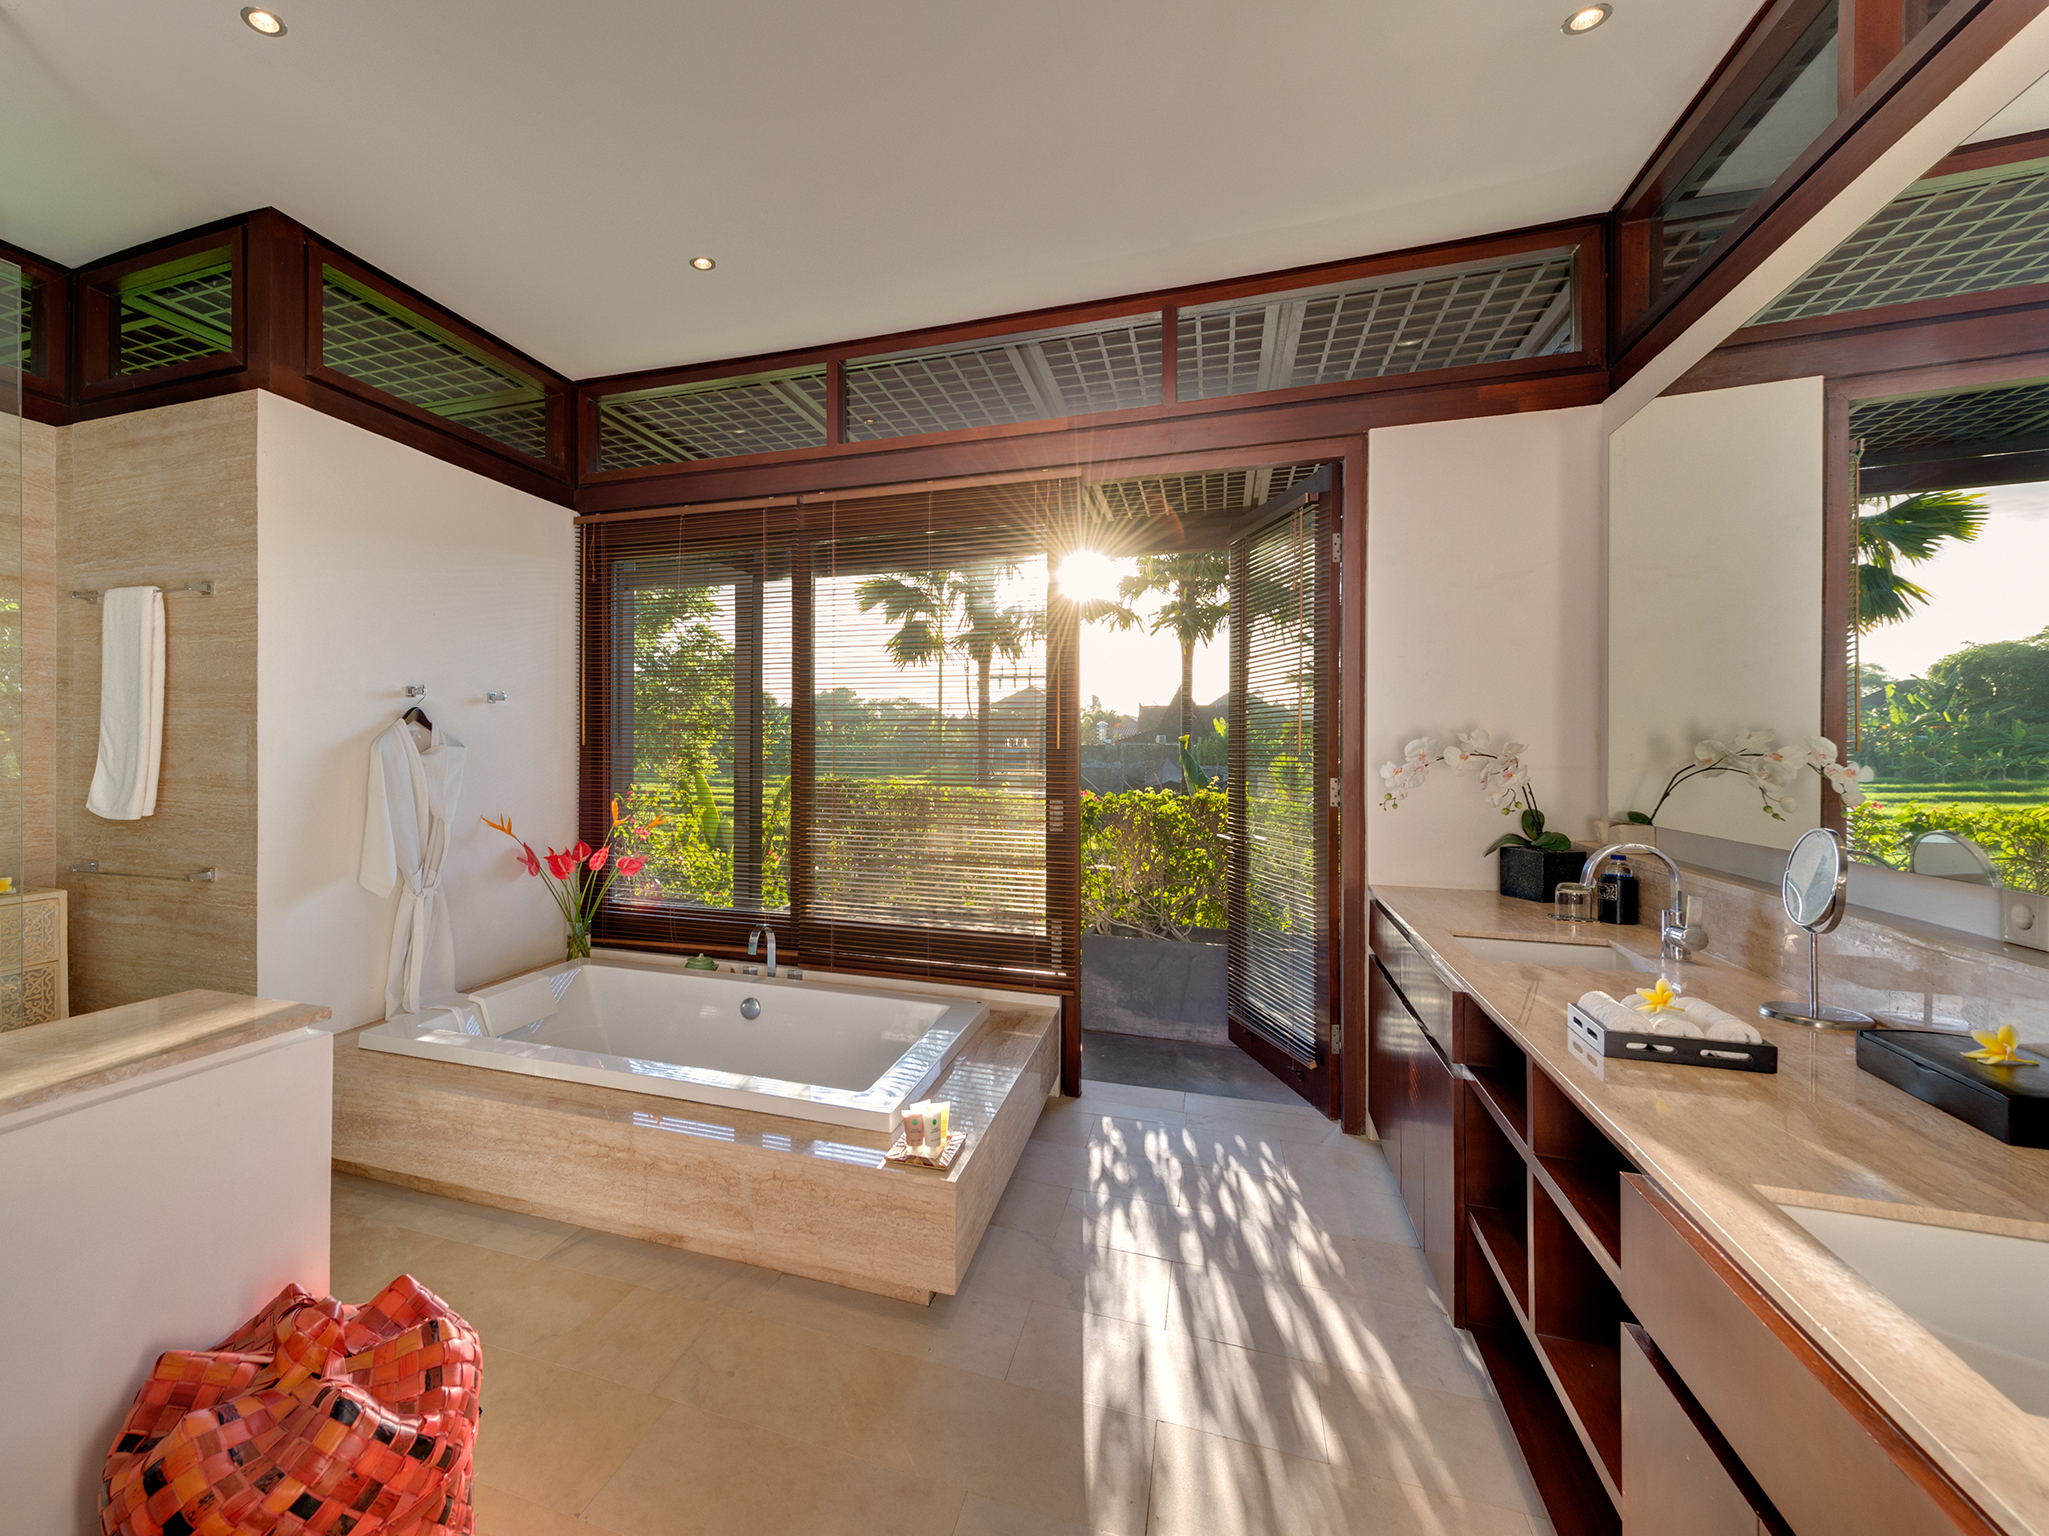 Bendega Nui - Ensuite bathroom with view - Bendega Nui, Canggu, Bali